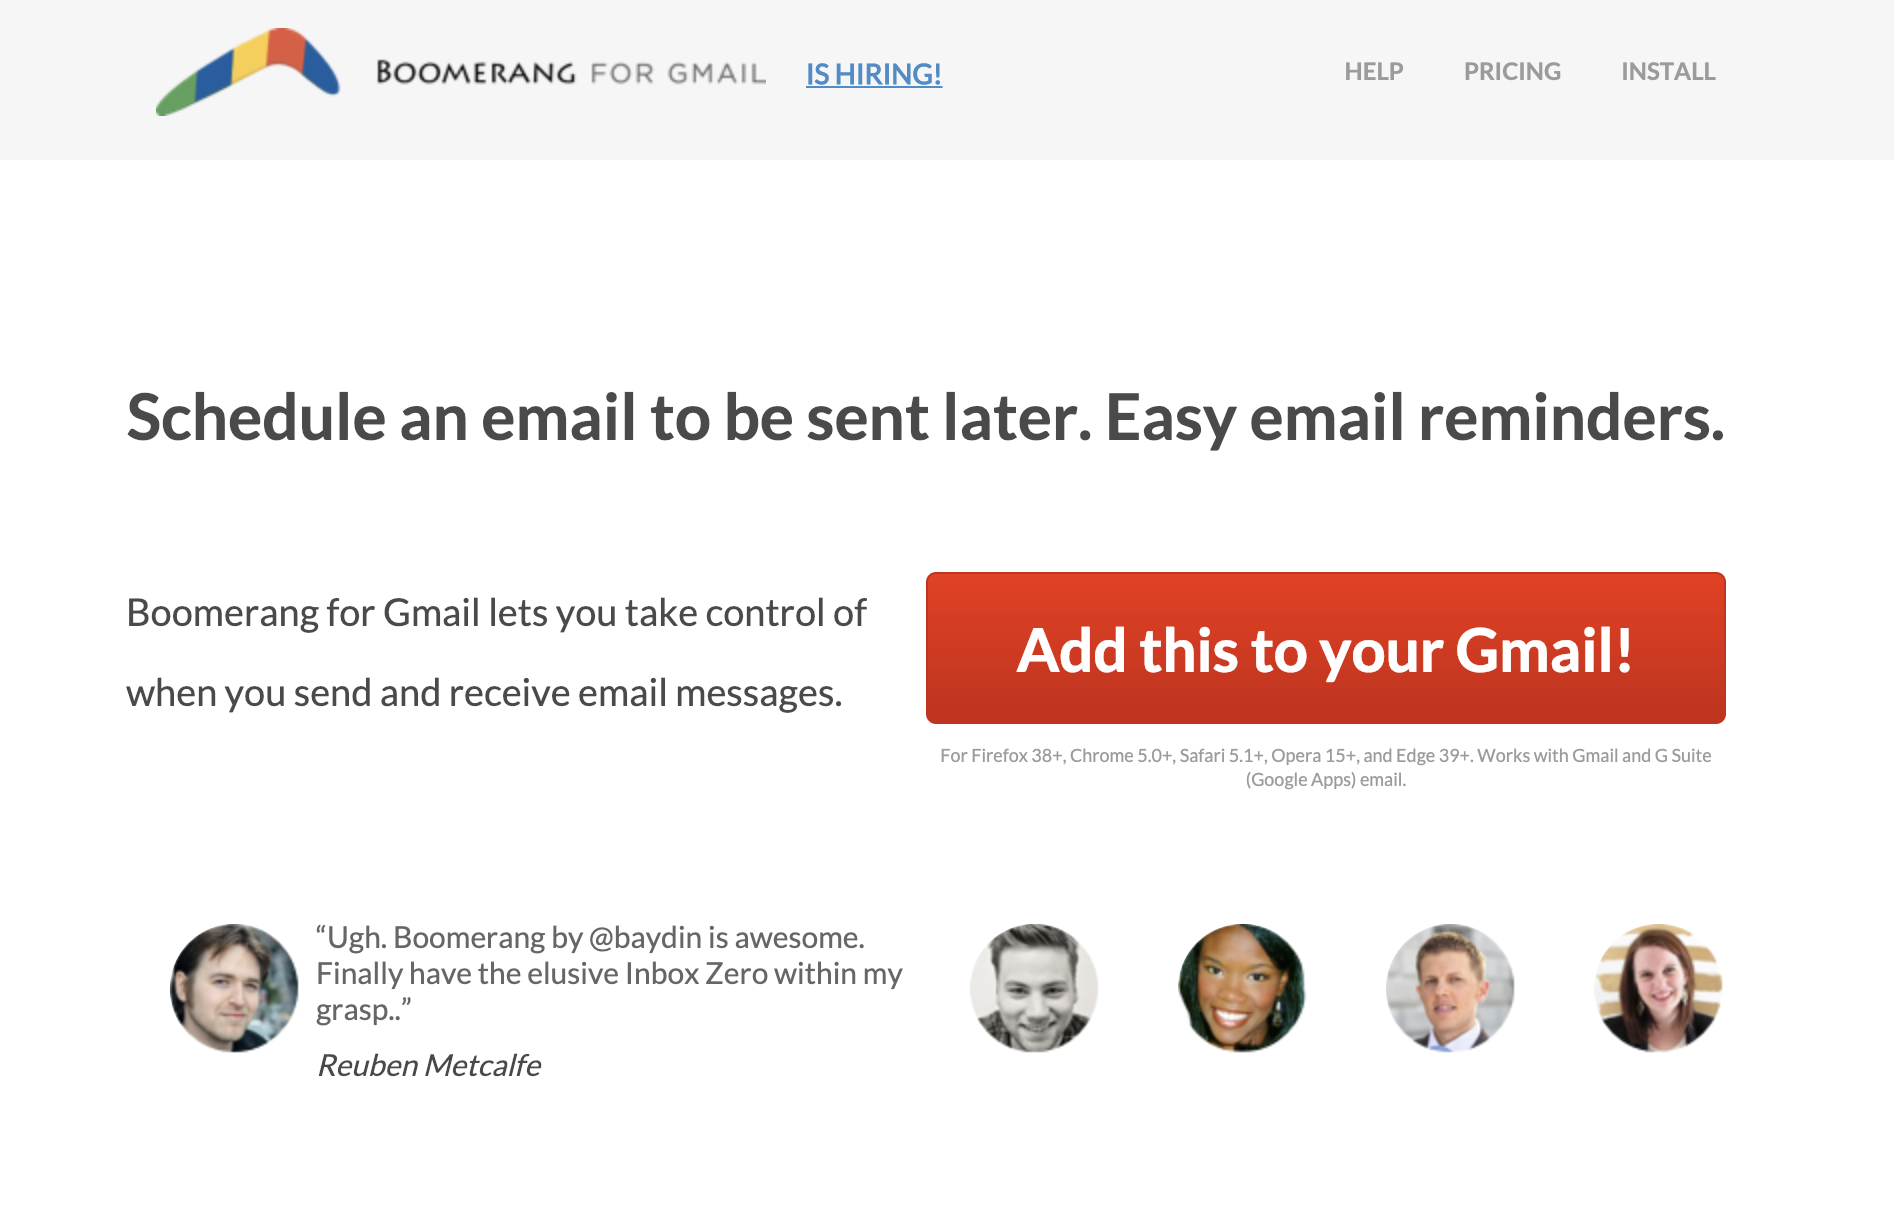 """Boomerang - I am a self-confessed late-evening email writer. I will draft an email after dinner, and instead of saving it as a draft to send the next morning, I will use Boomerang to schedule the email to be automatically sent at its appropriate time. You can also """"boomerang"""" an email that you don't have time to respond to so it comes back to you at a better time."""